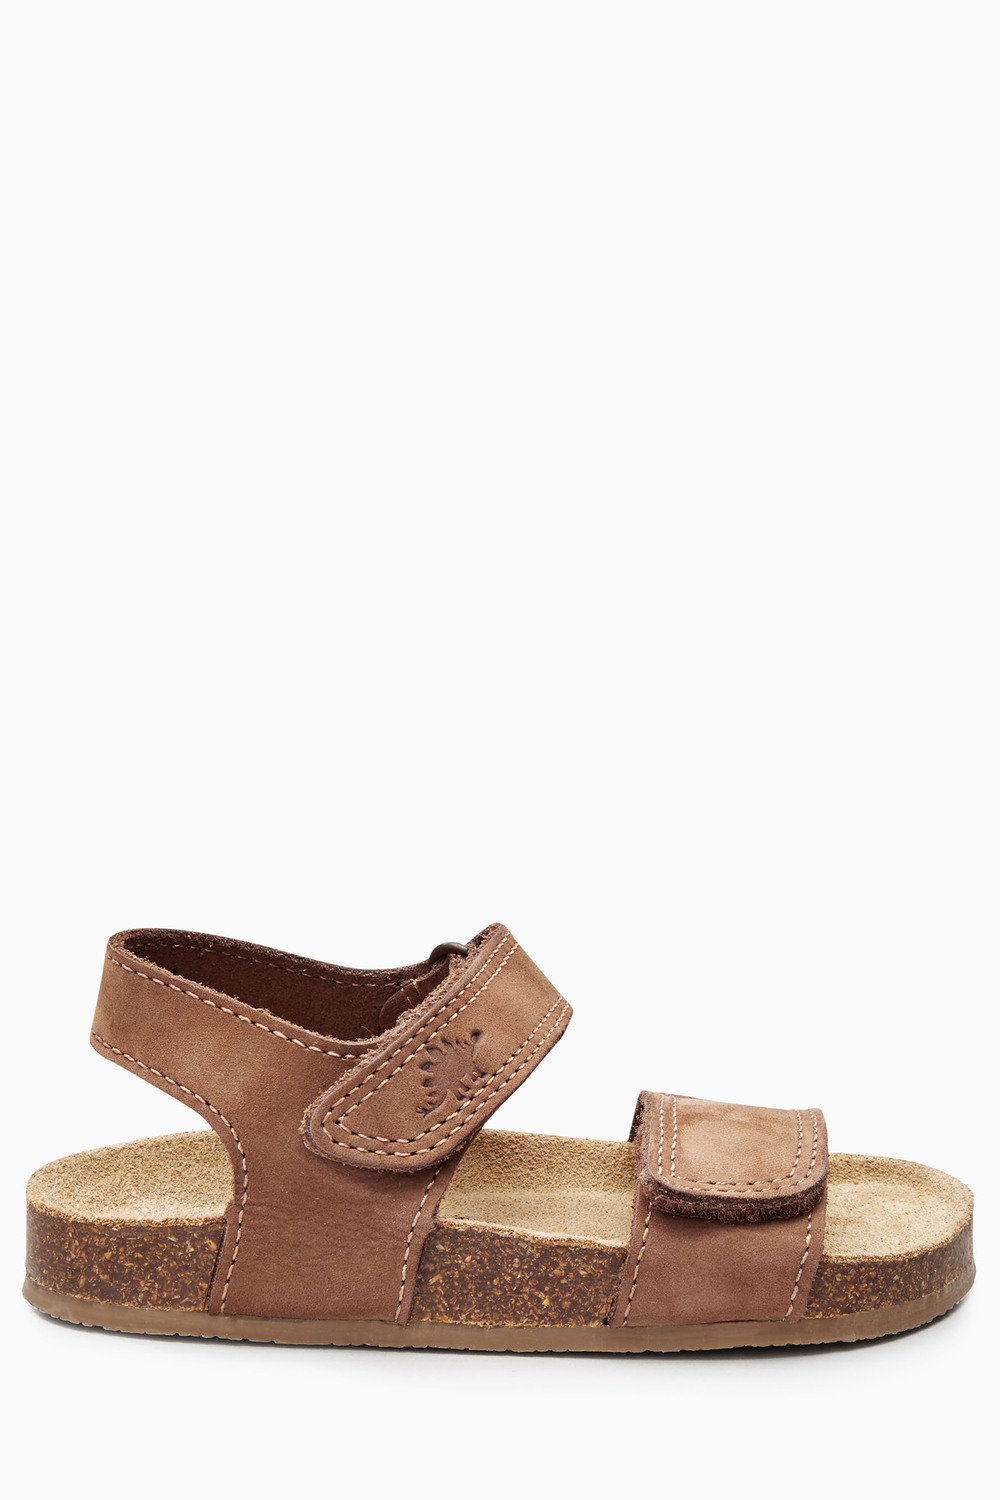 7a62383d7 Next Smart Leather Corkbed Sandals (Younger Boys) Online